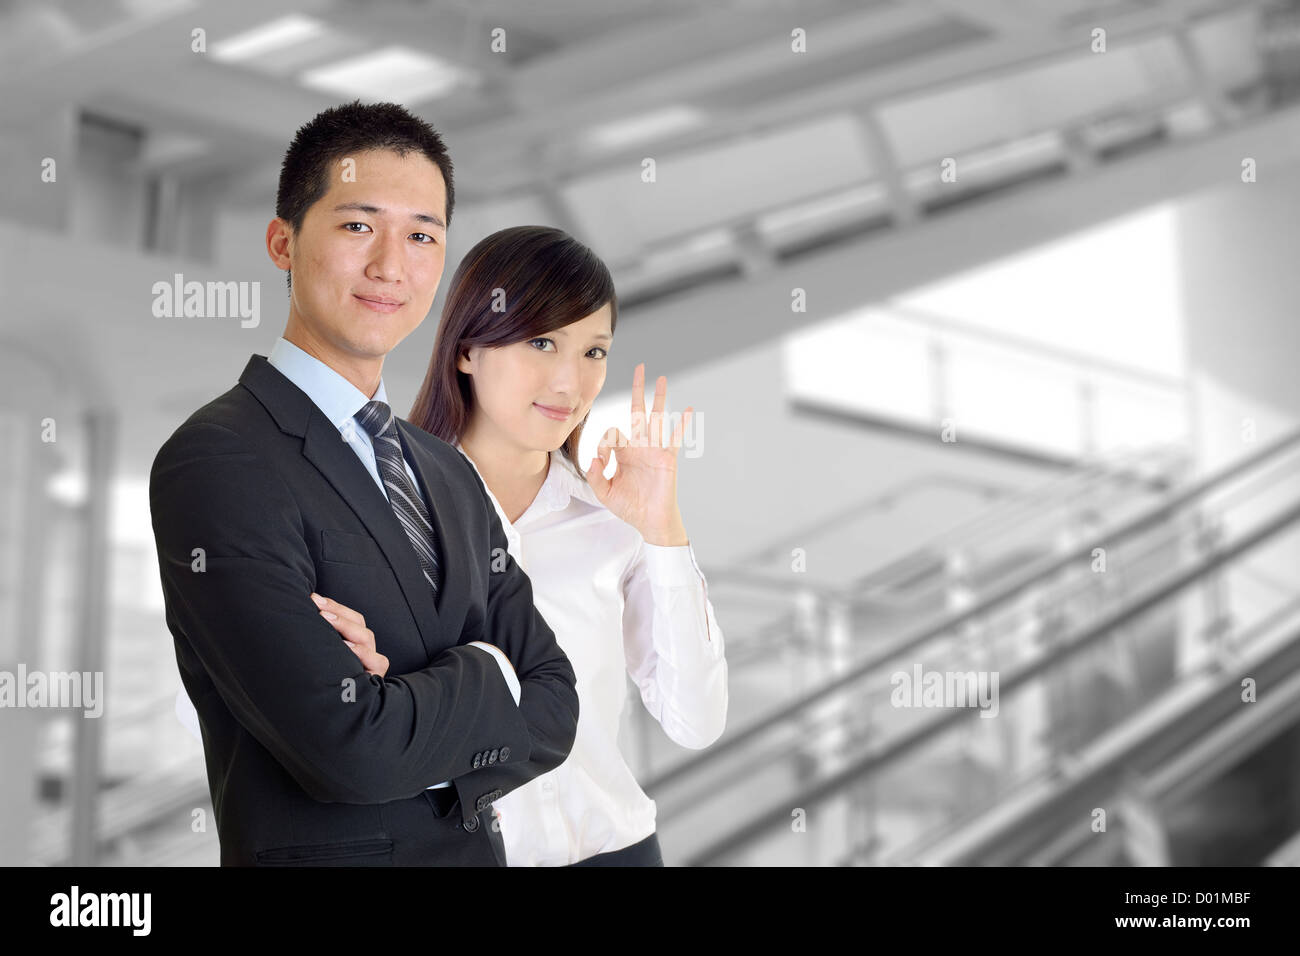 Business team, smiling businessman and friendly businesswoman in modern building. - Stock Image